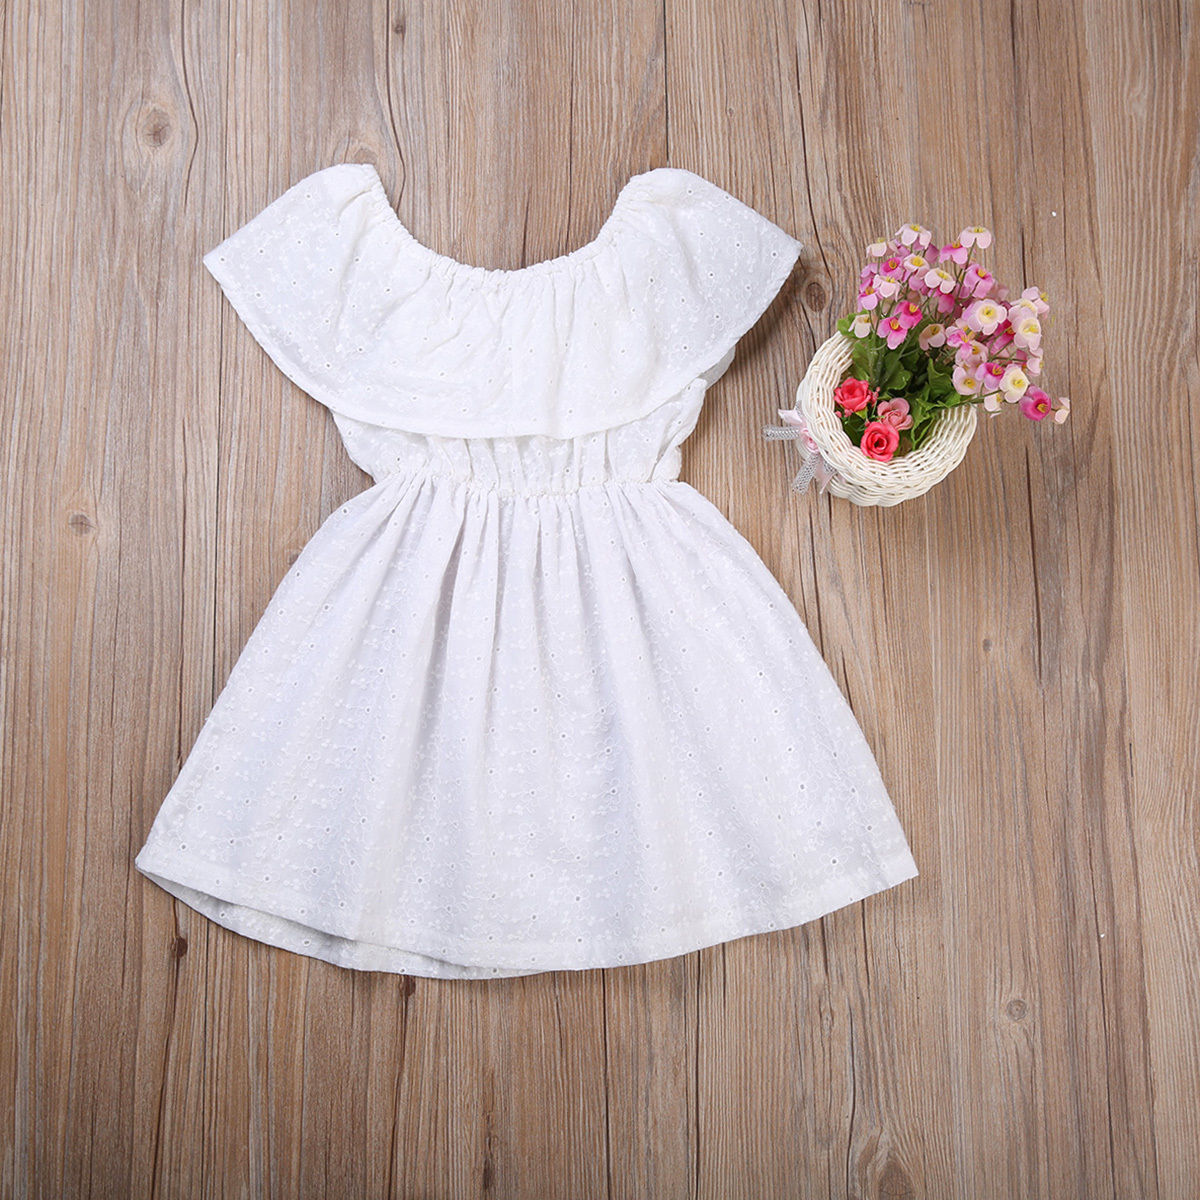 Girls White Ruffle Dress